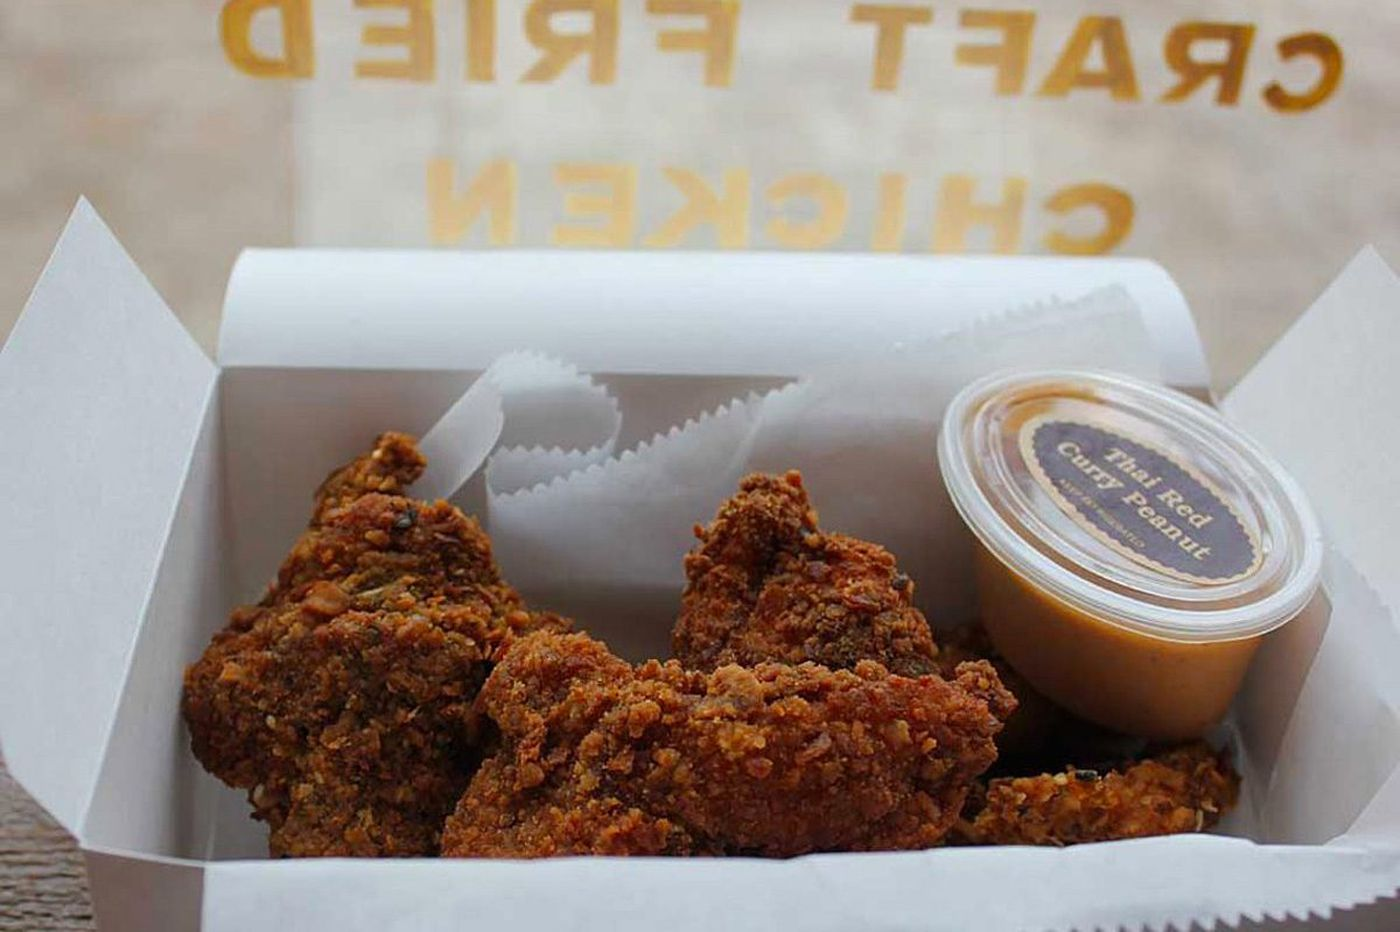 10 great places for fried chicken in Philly